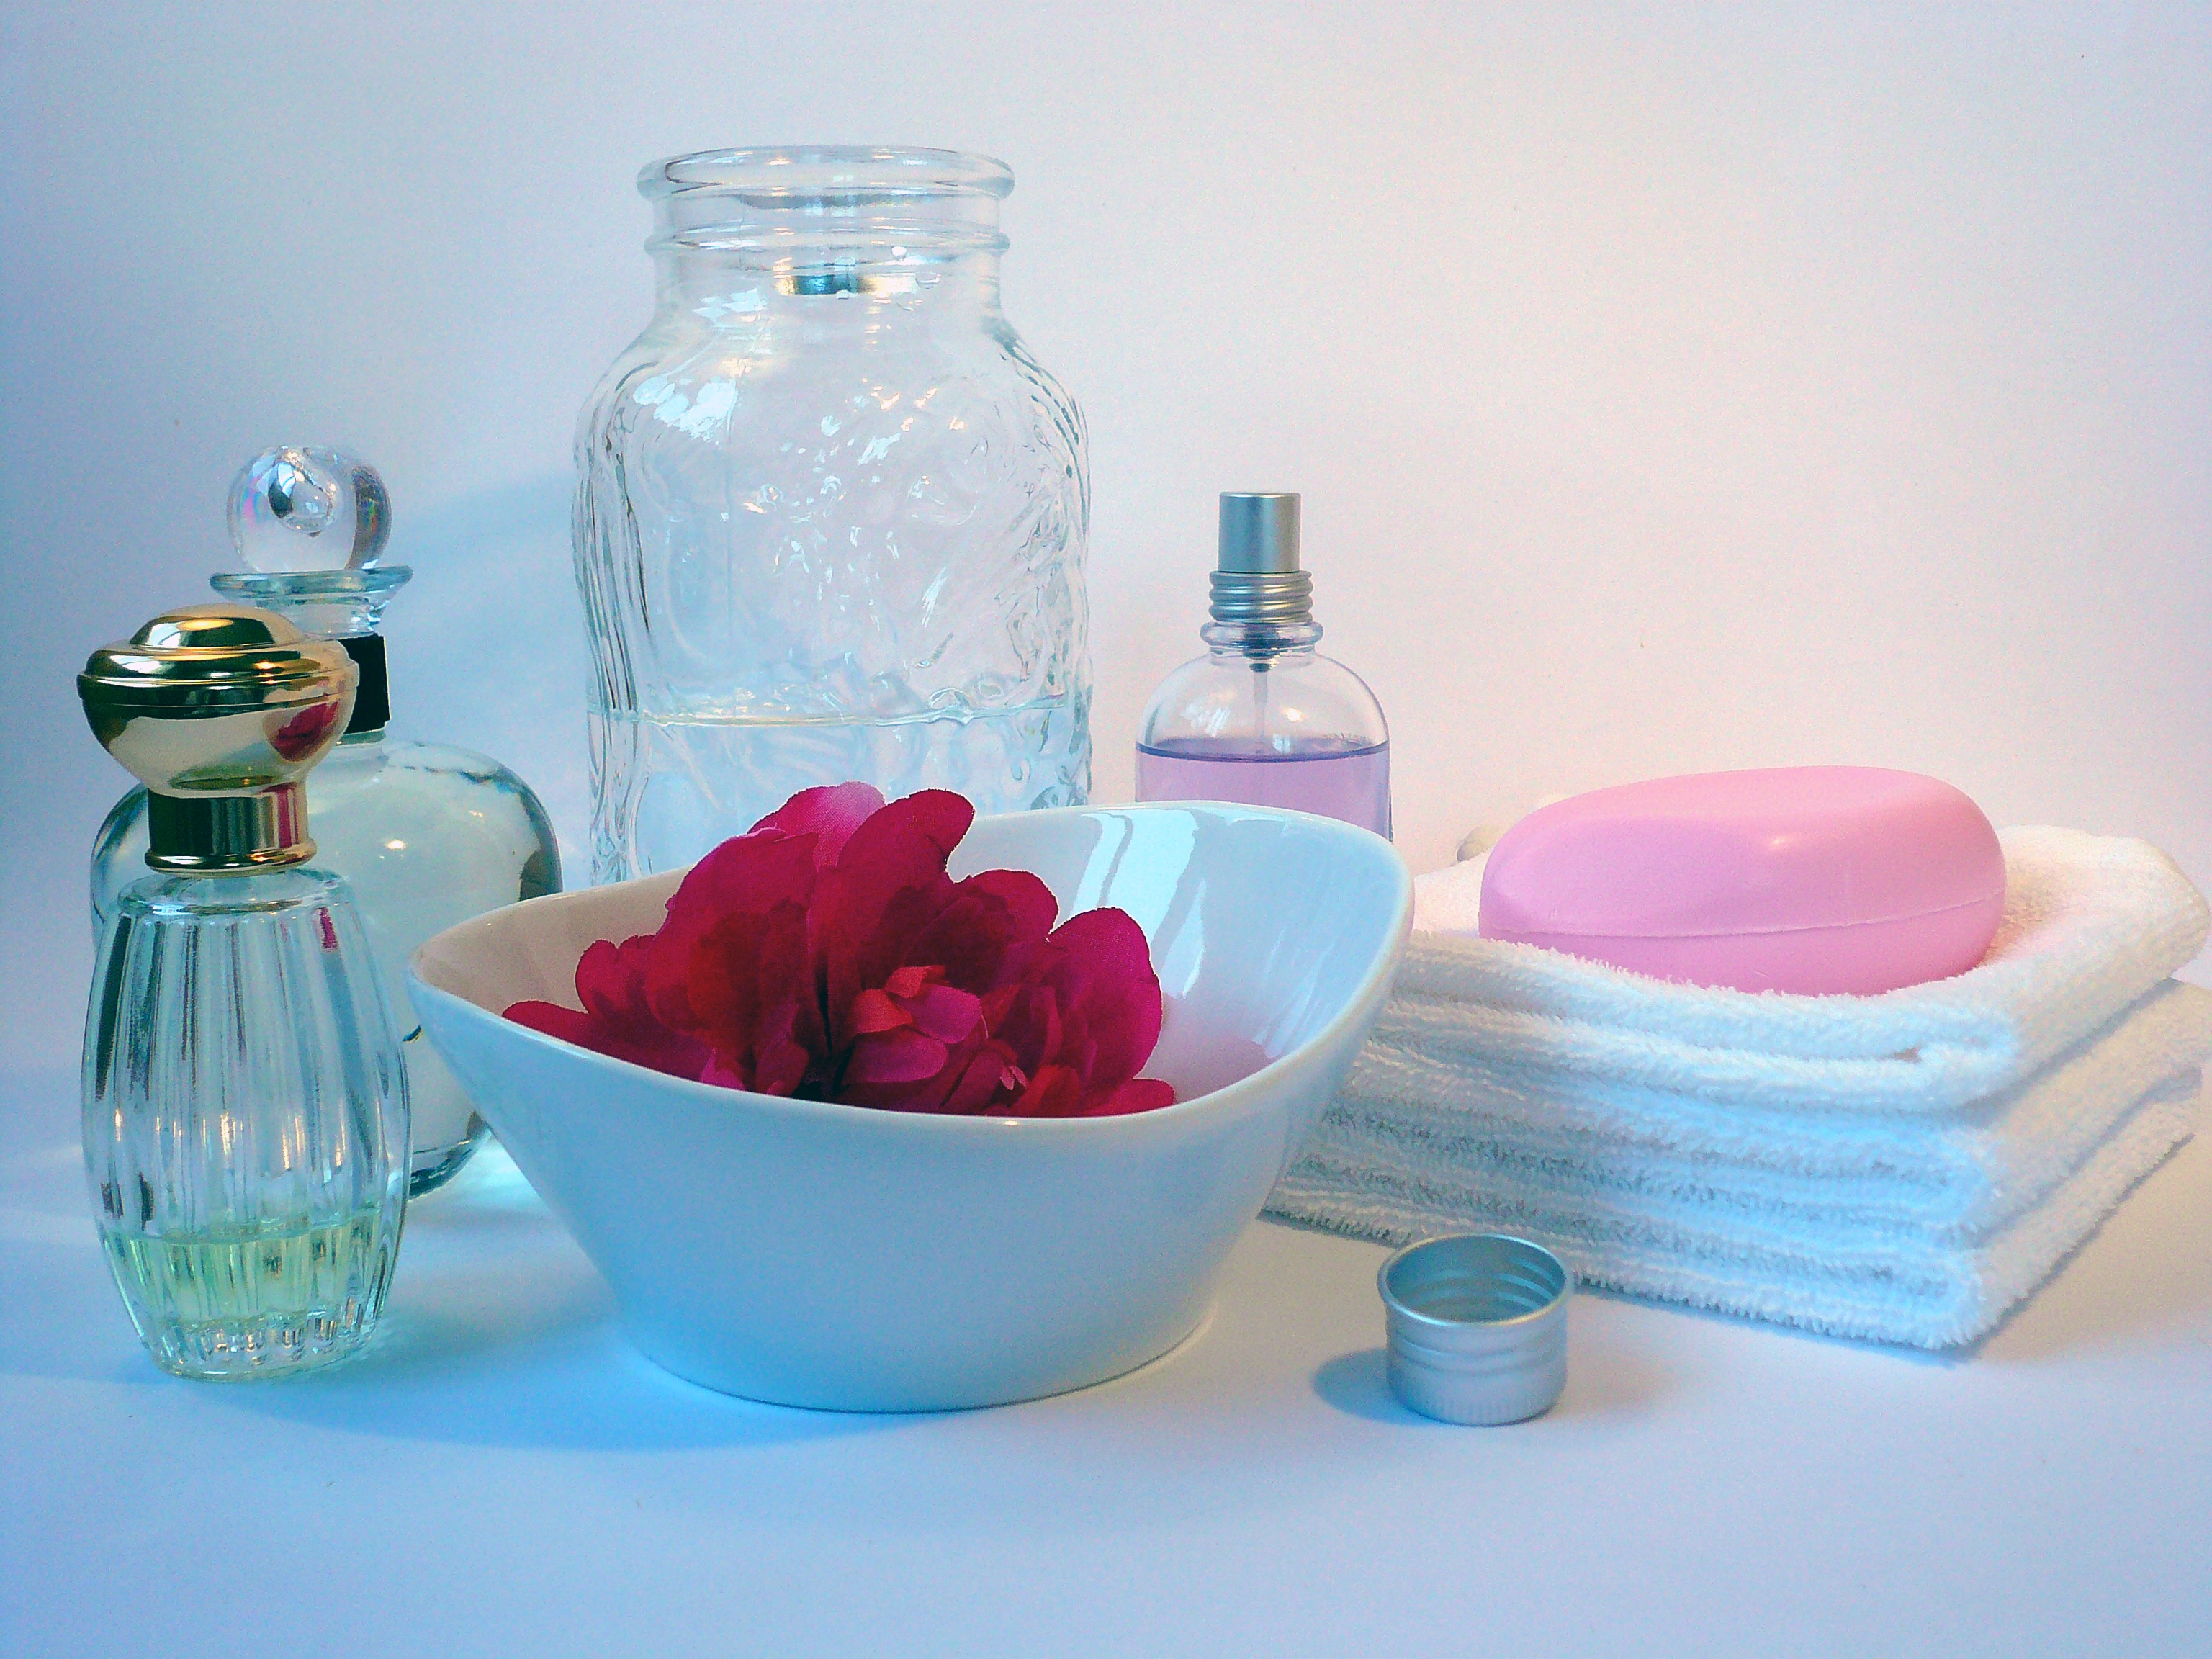 create sets and series soap and marketing personal care products to women